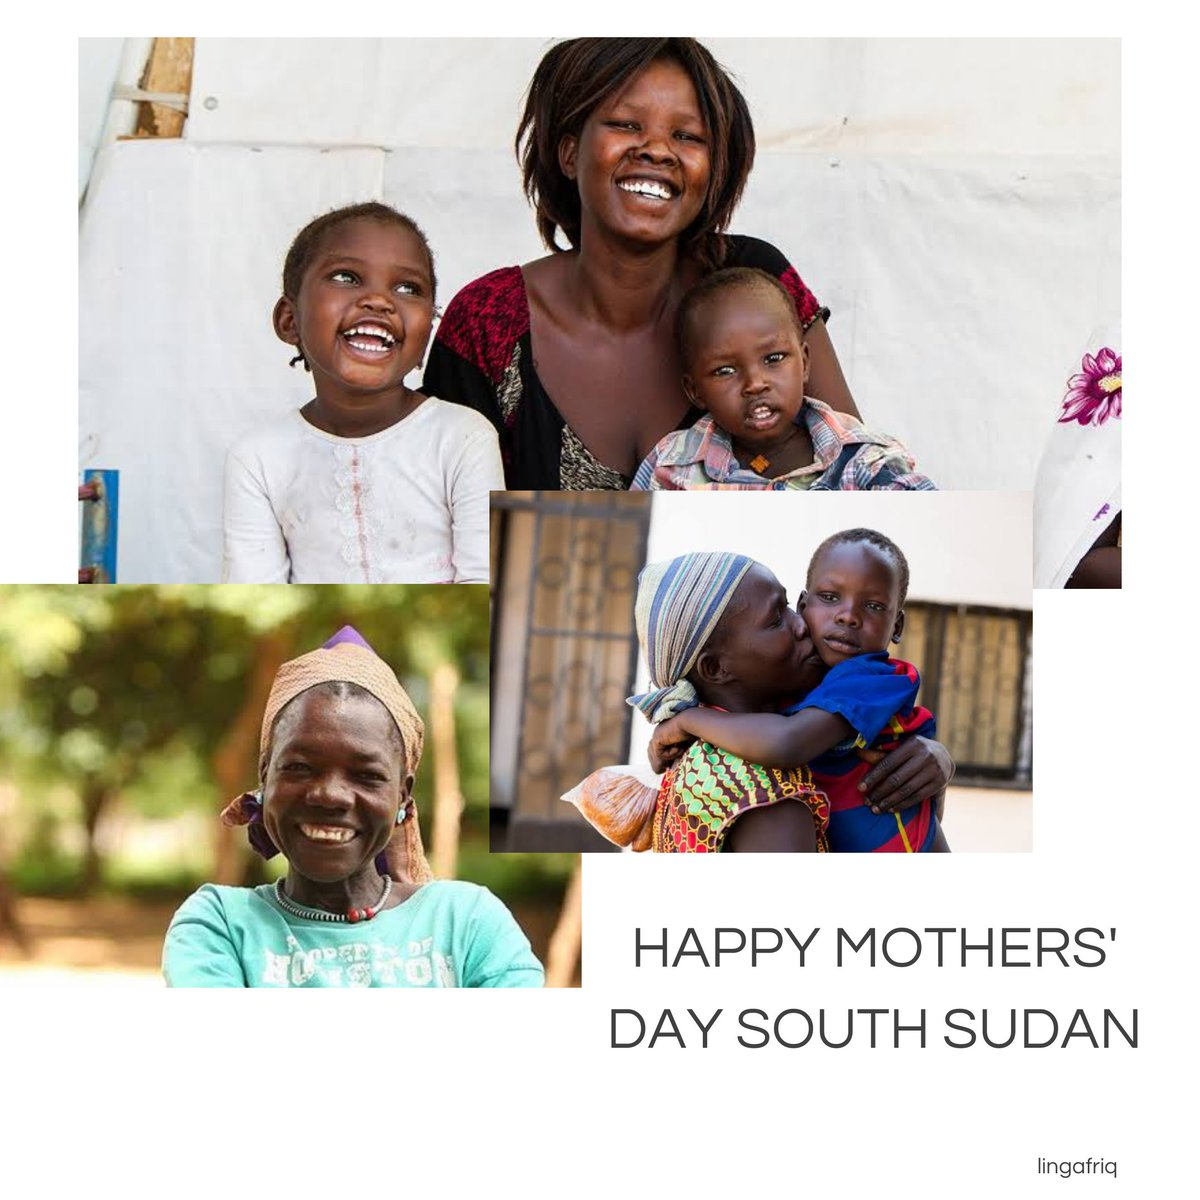 Celebrating Mothers, for laughing with us on the best days and sticking with us on the worst day. Happy Mothers' Day South Sudan! • • • #happymothersday #happymothersday#southsudan #southsudanese #lingafriq #africanow #africa #afriq #southsudanmothersdaypic.twitter.com/FkZBelSqIC